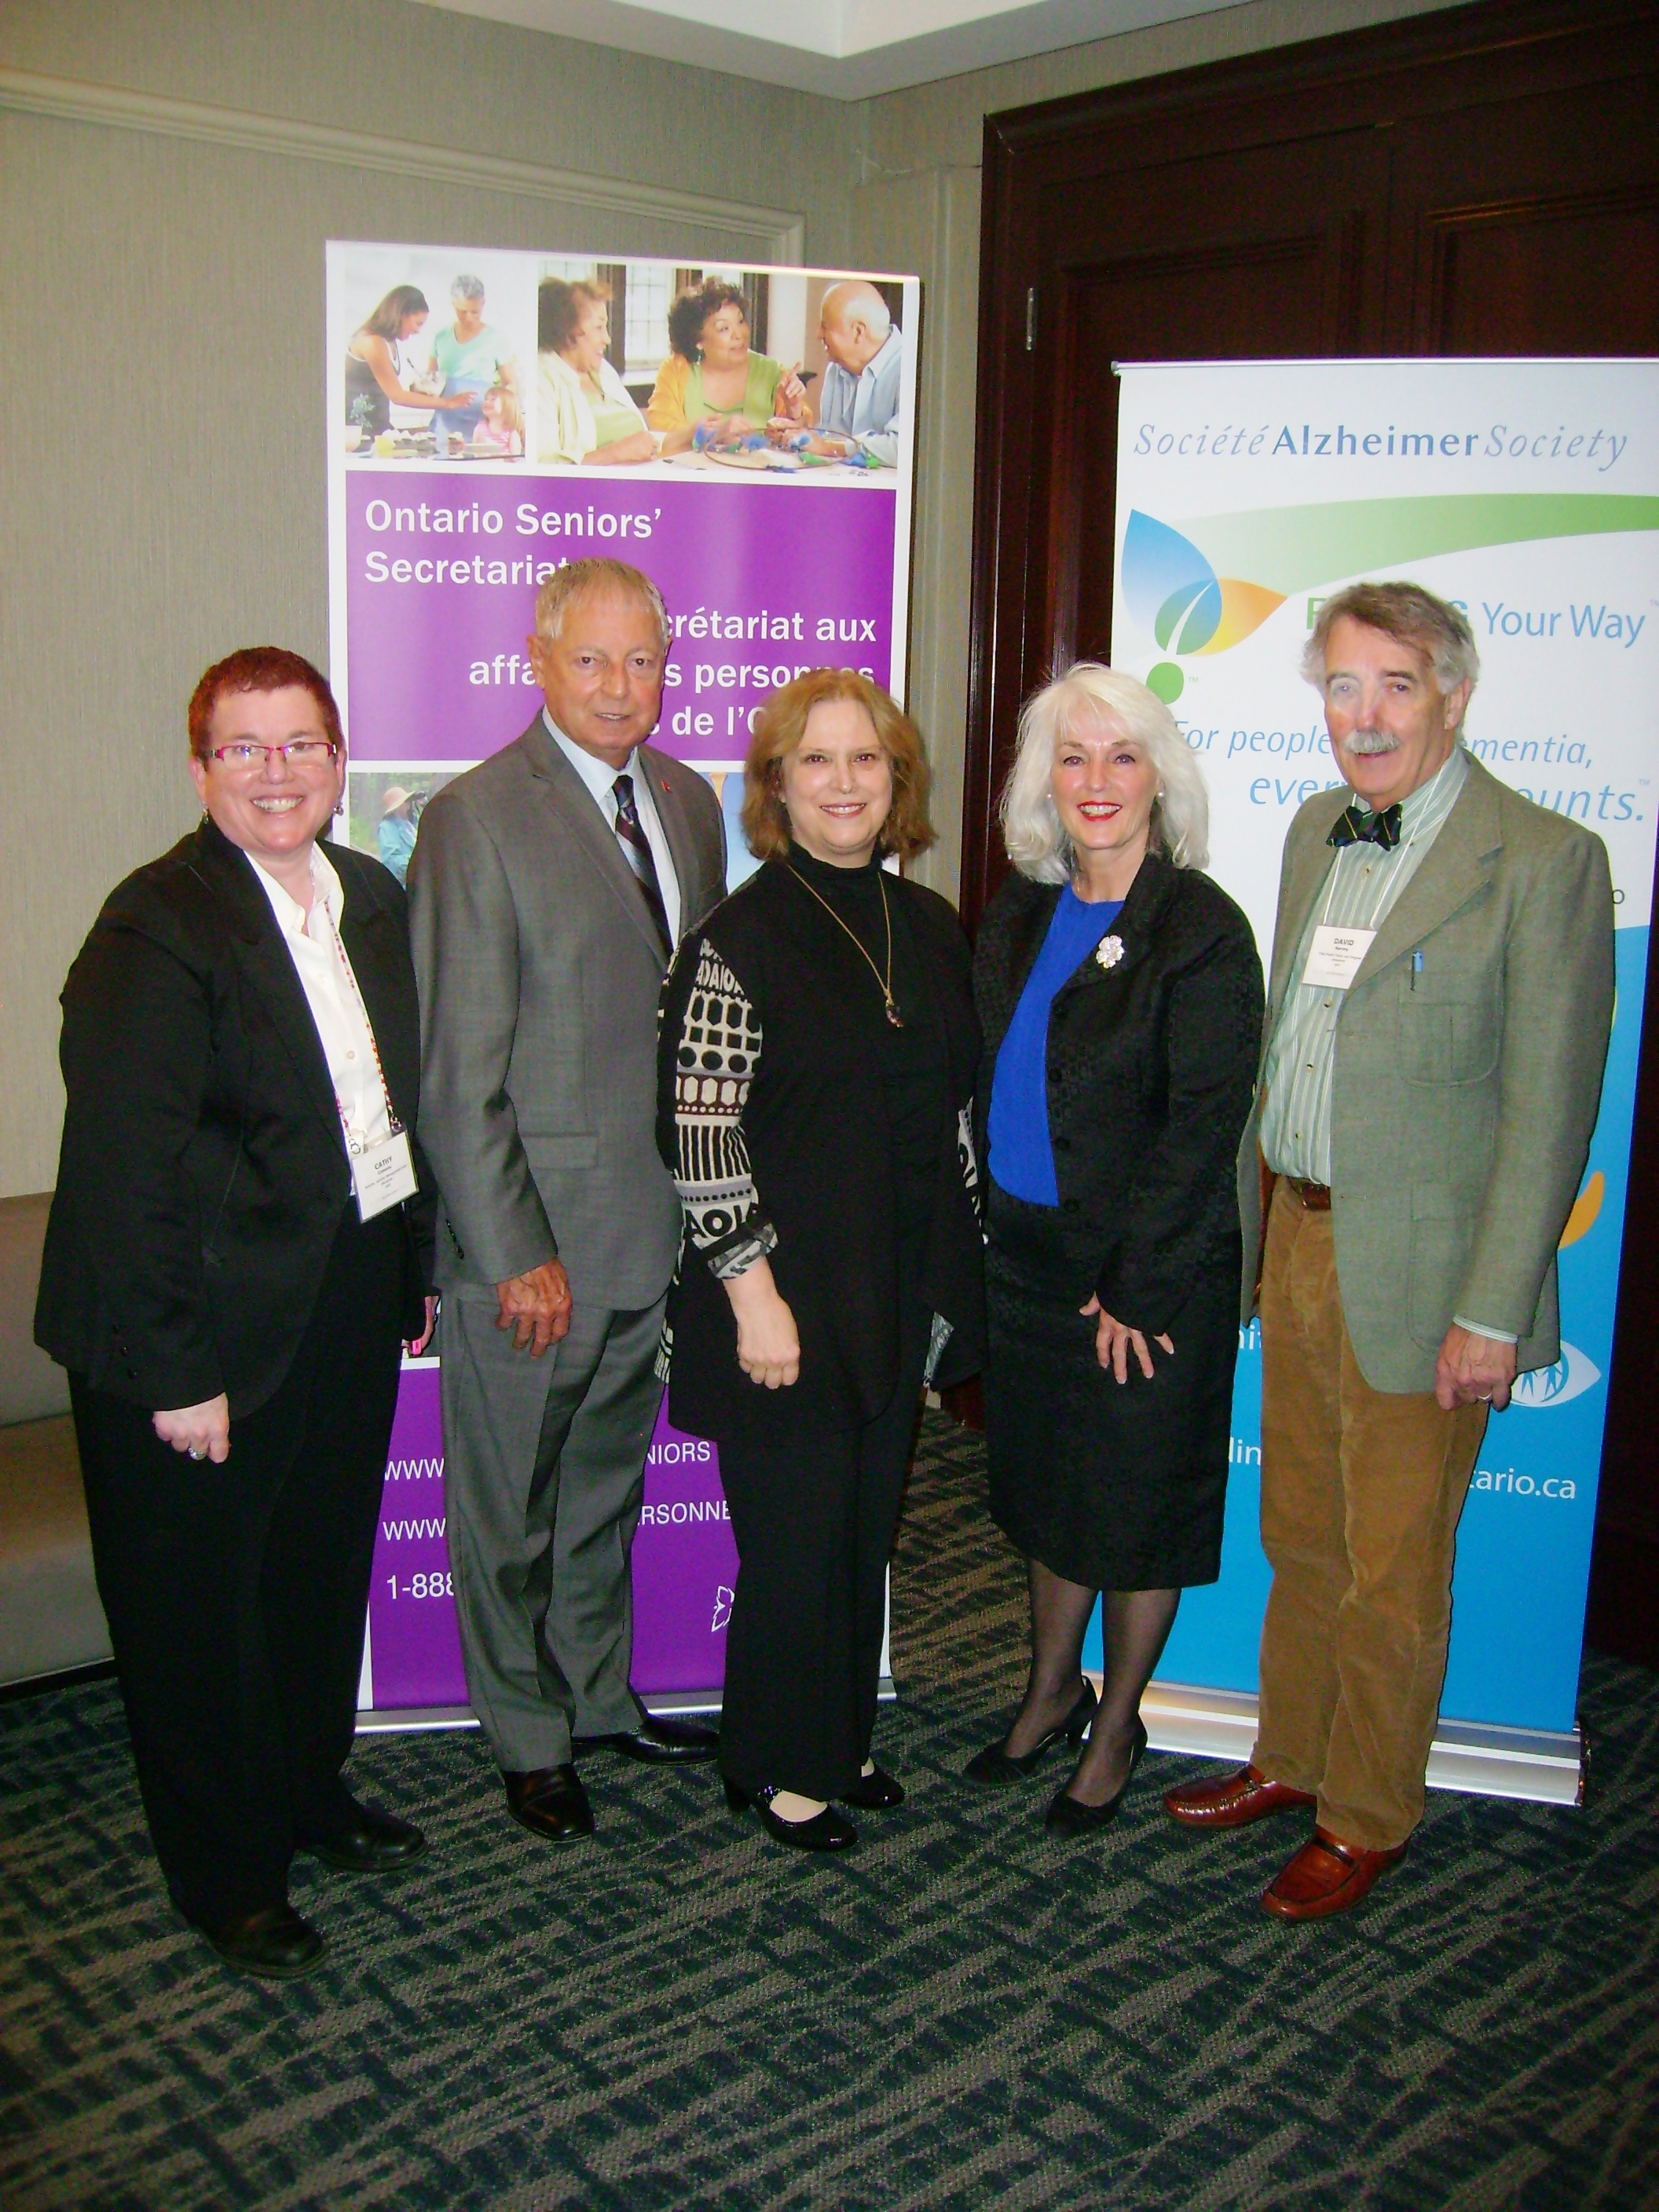 Representatives from the Alzheimer Society of Ontario with the Minister and Gale Carey